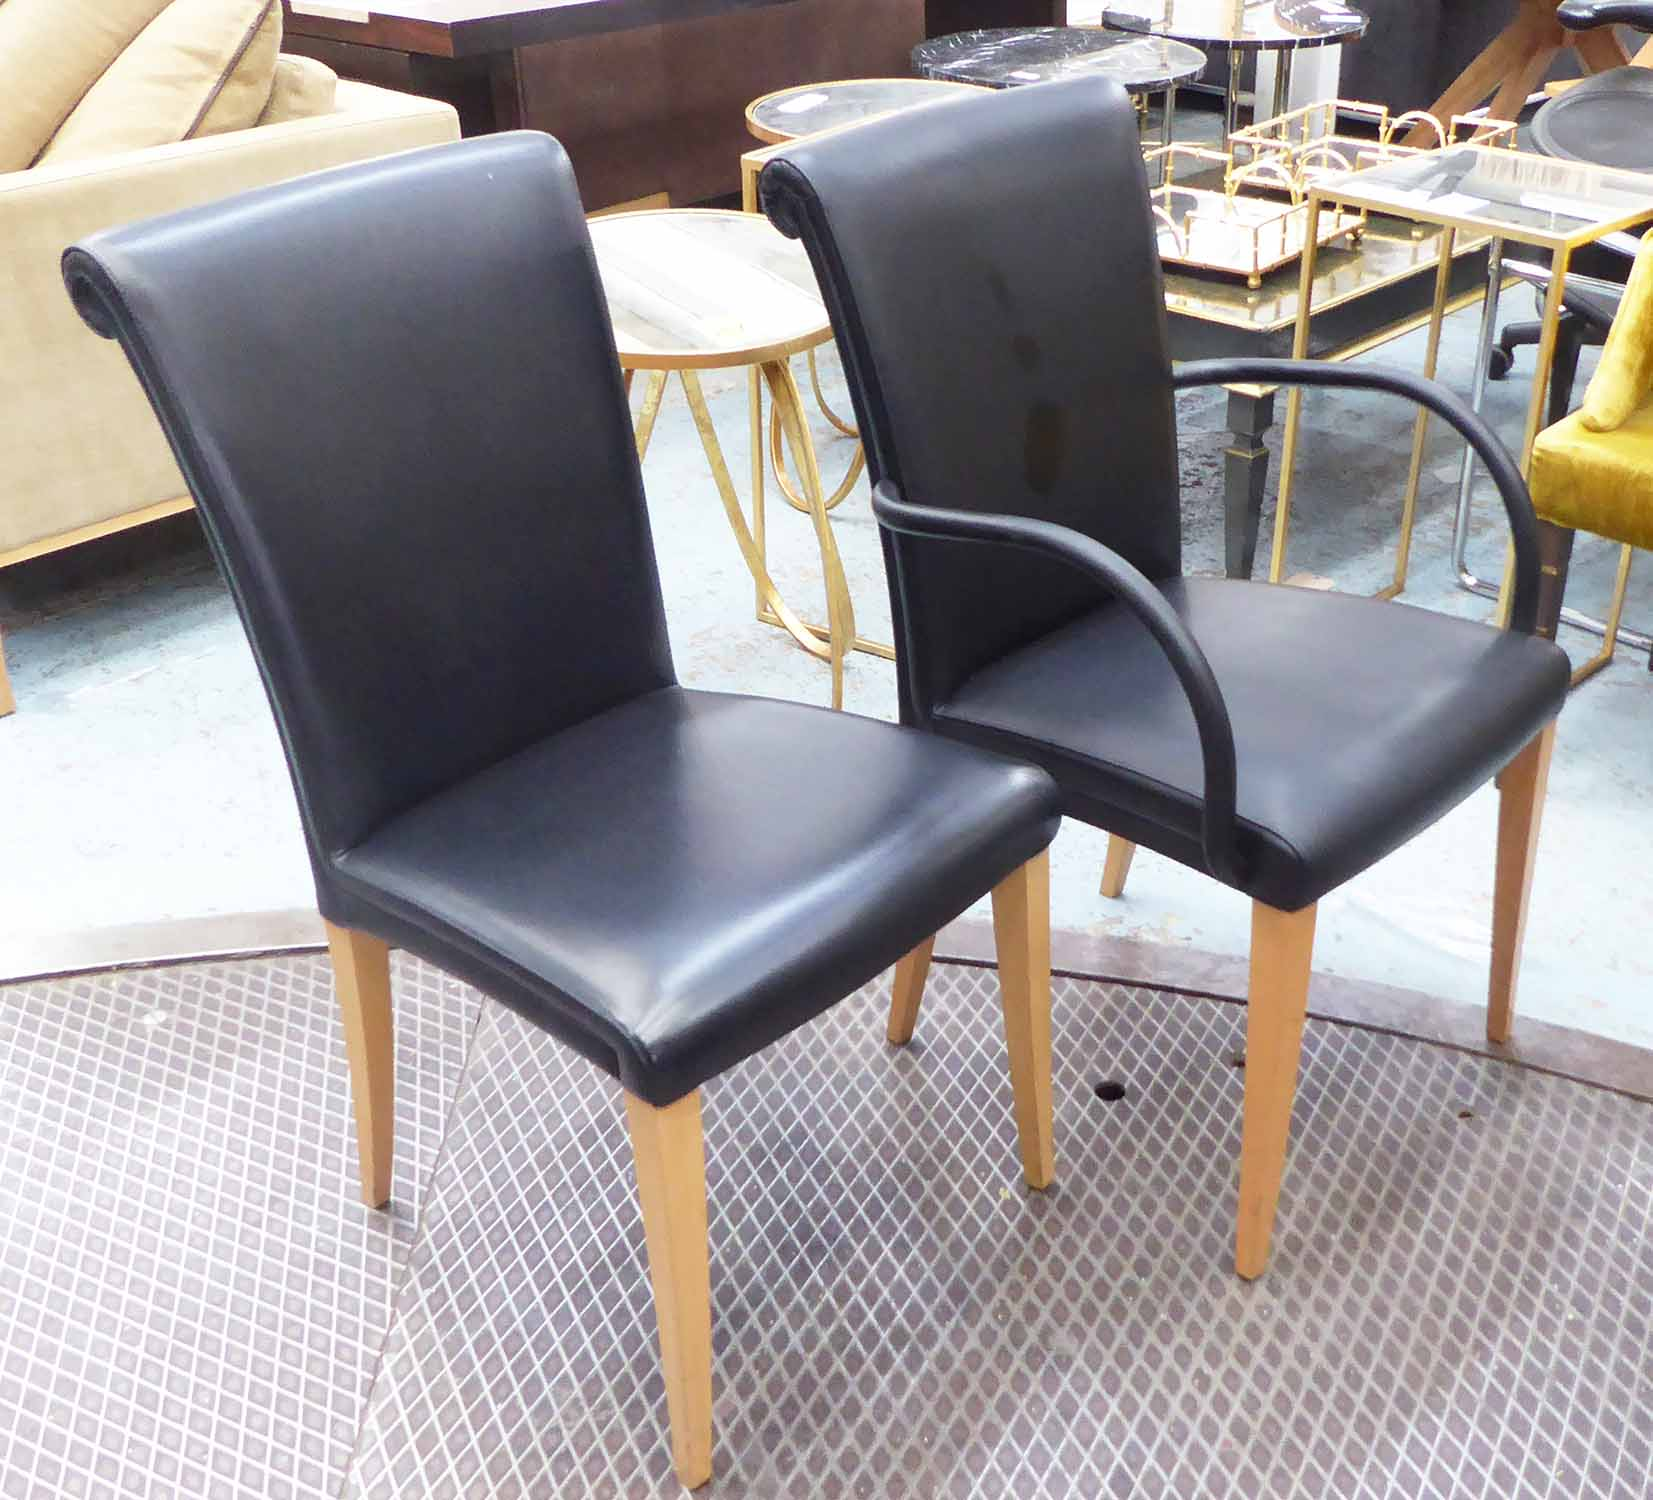 Lot 2 - POLTRONA FRAU VITTORIA DINING CHAIRS, a set of six, in black leather.